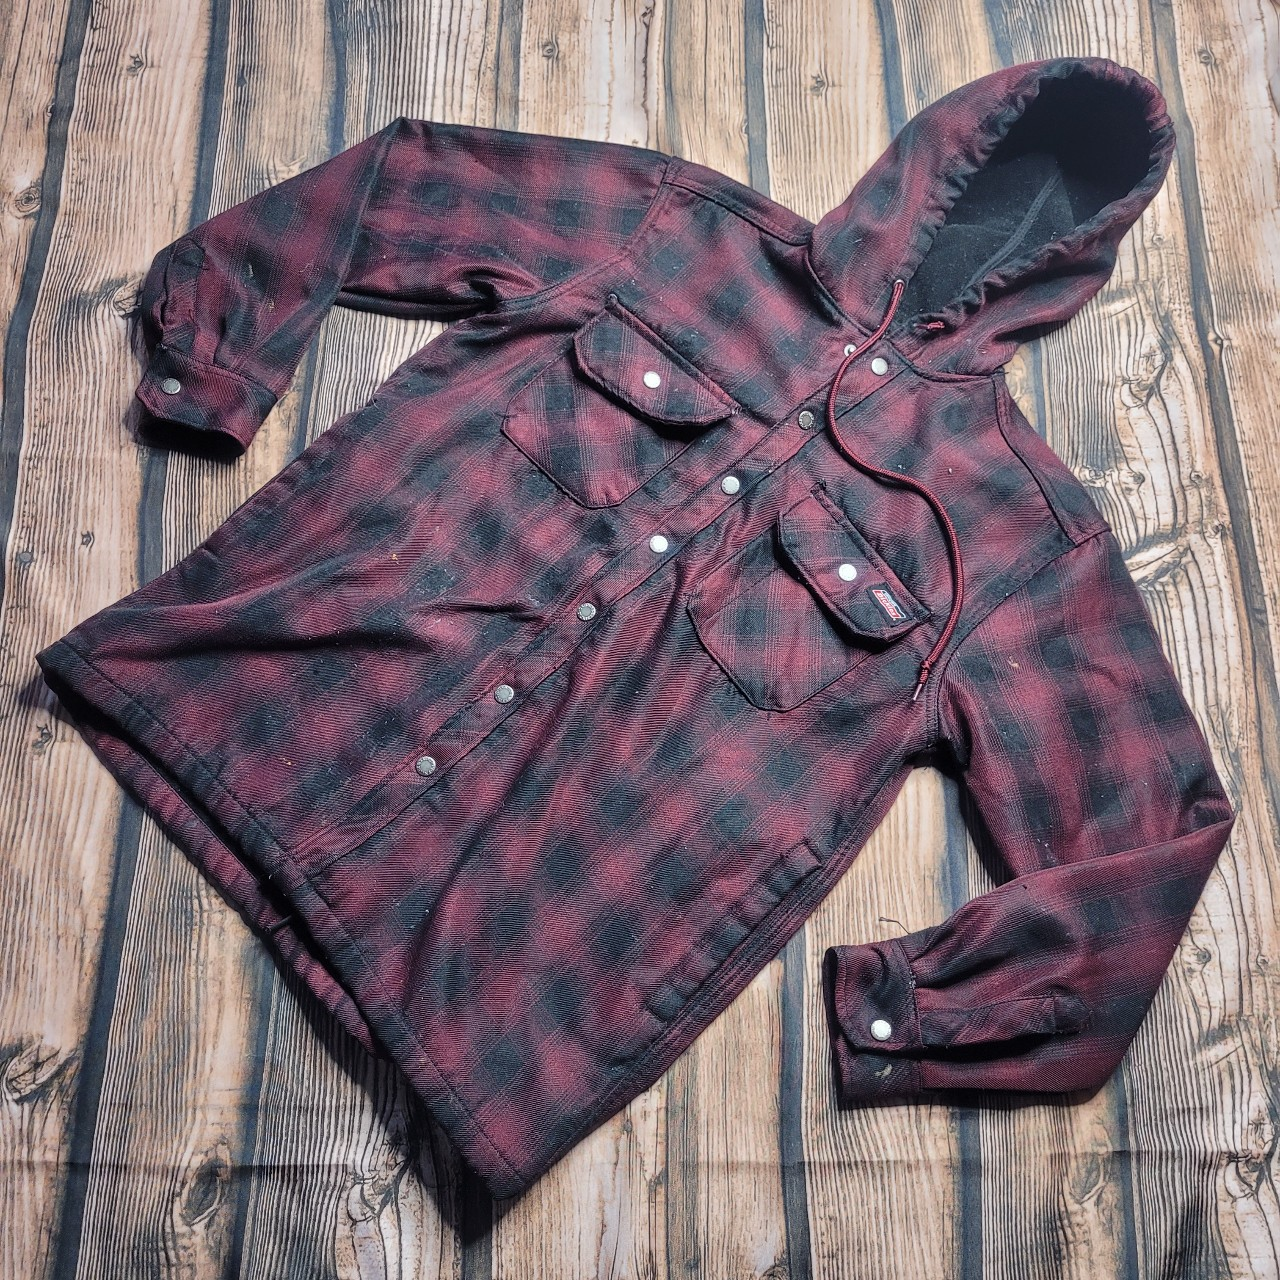 Product Image 1 - Dickies Insulated Flannel Jacket Sized Medium